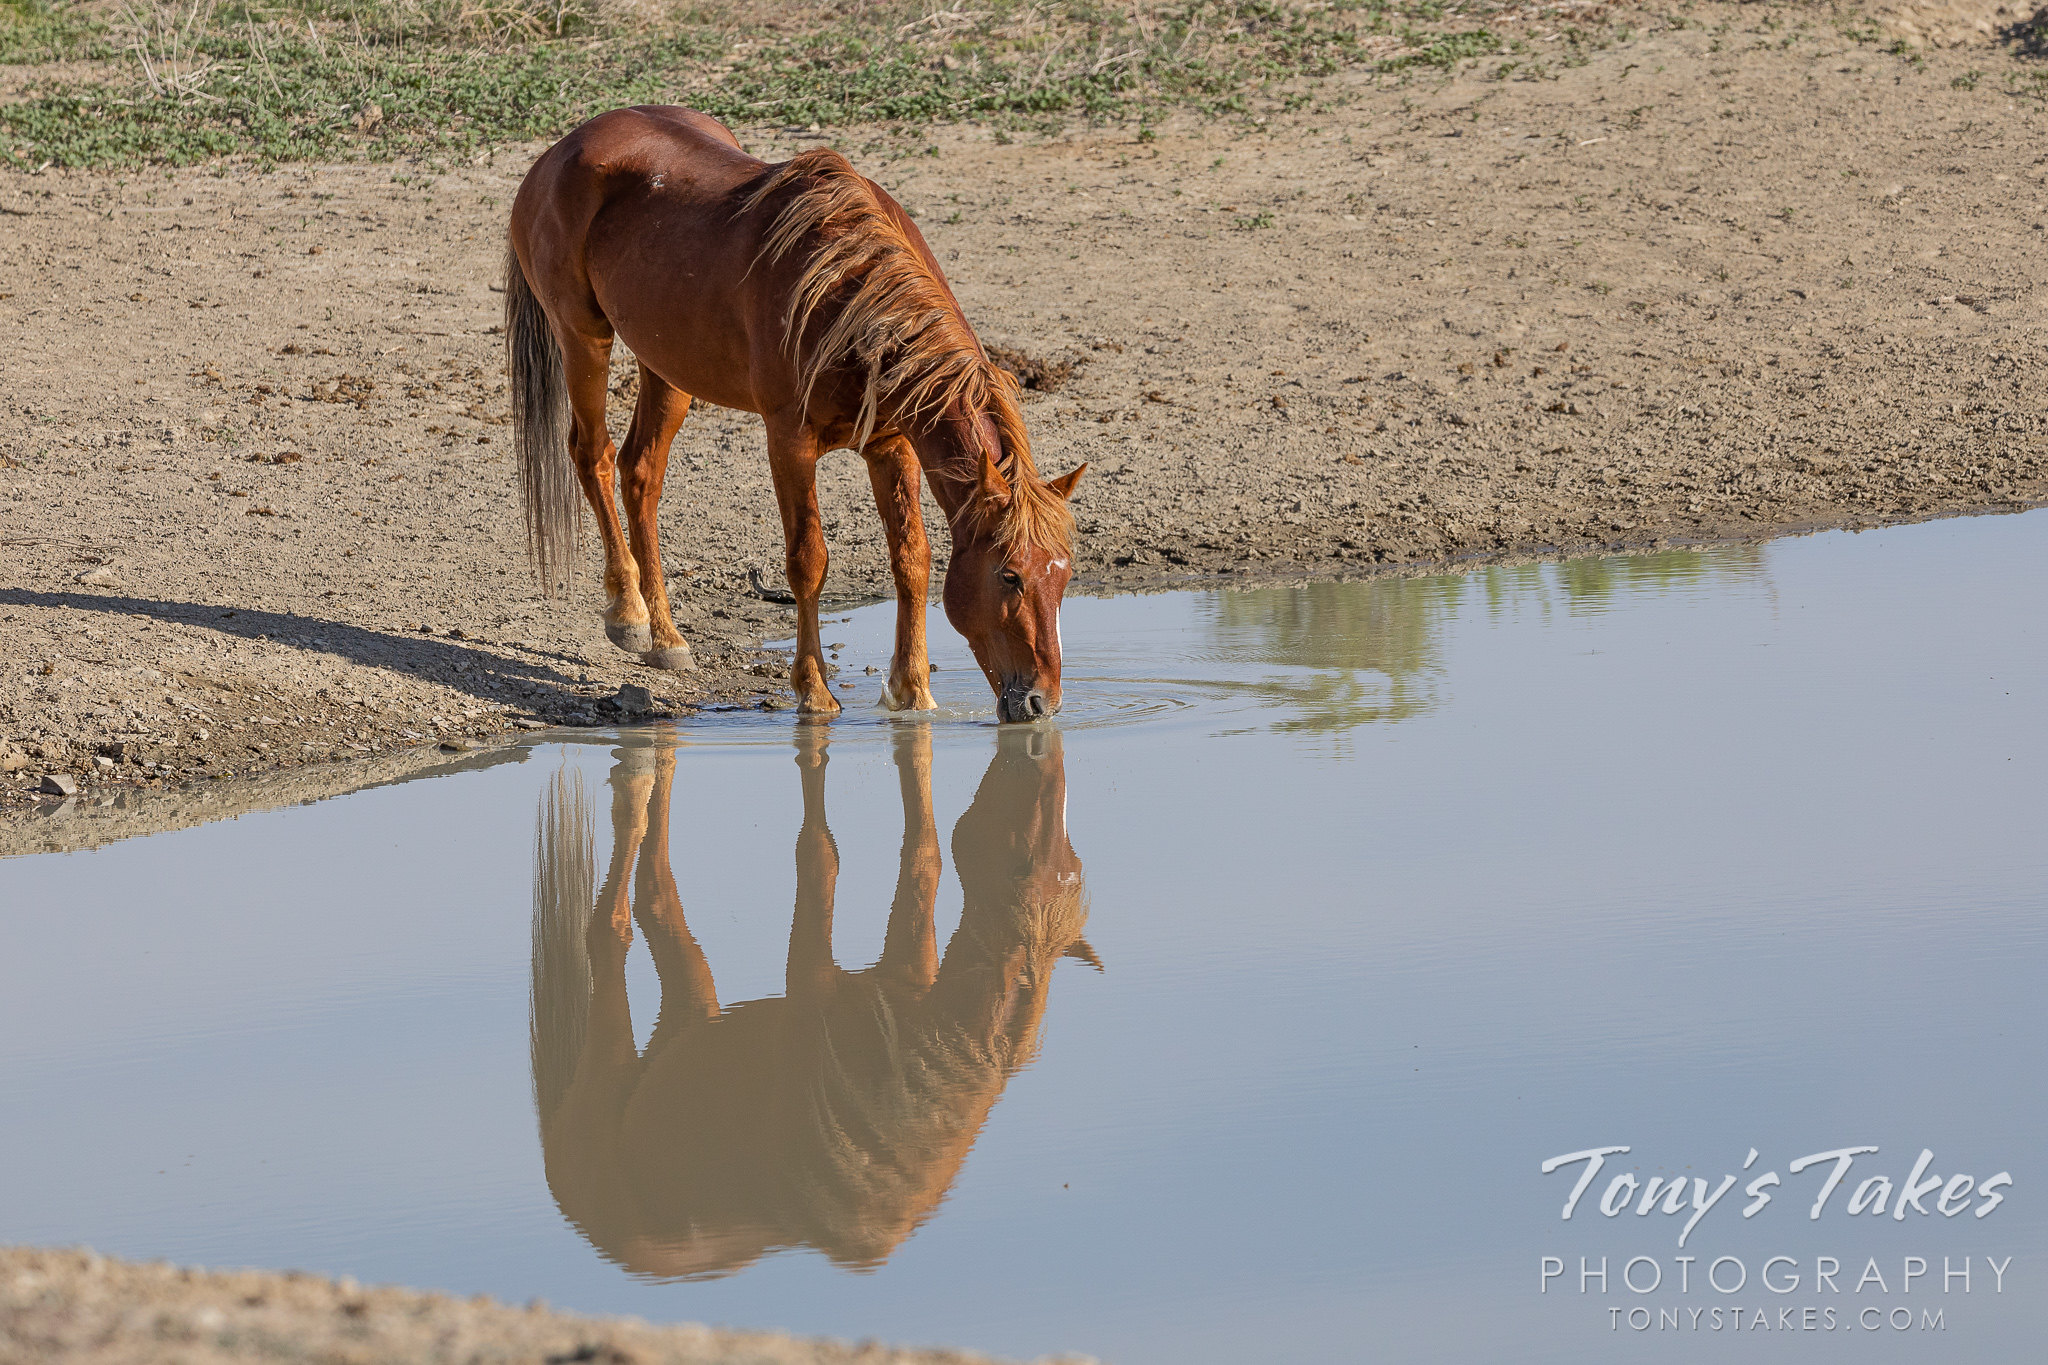 Wild horse watering hole reflections